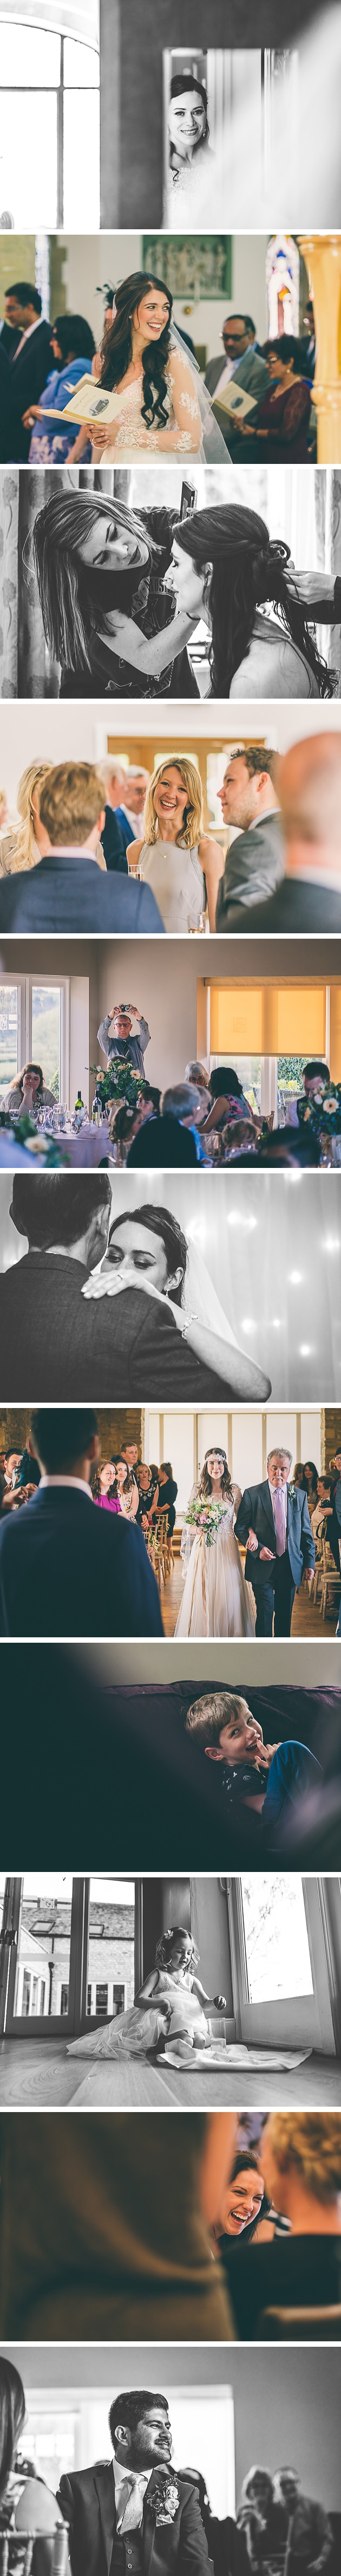 First dance at Tracy Park wedding venue